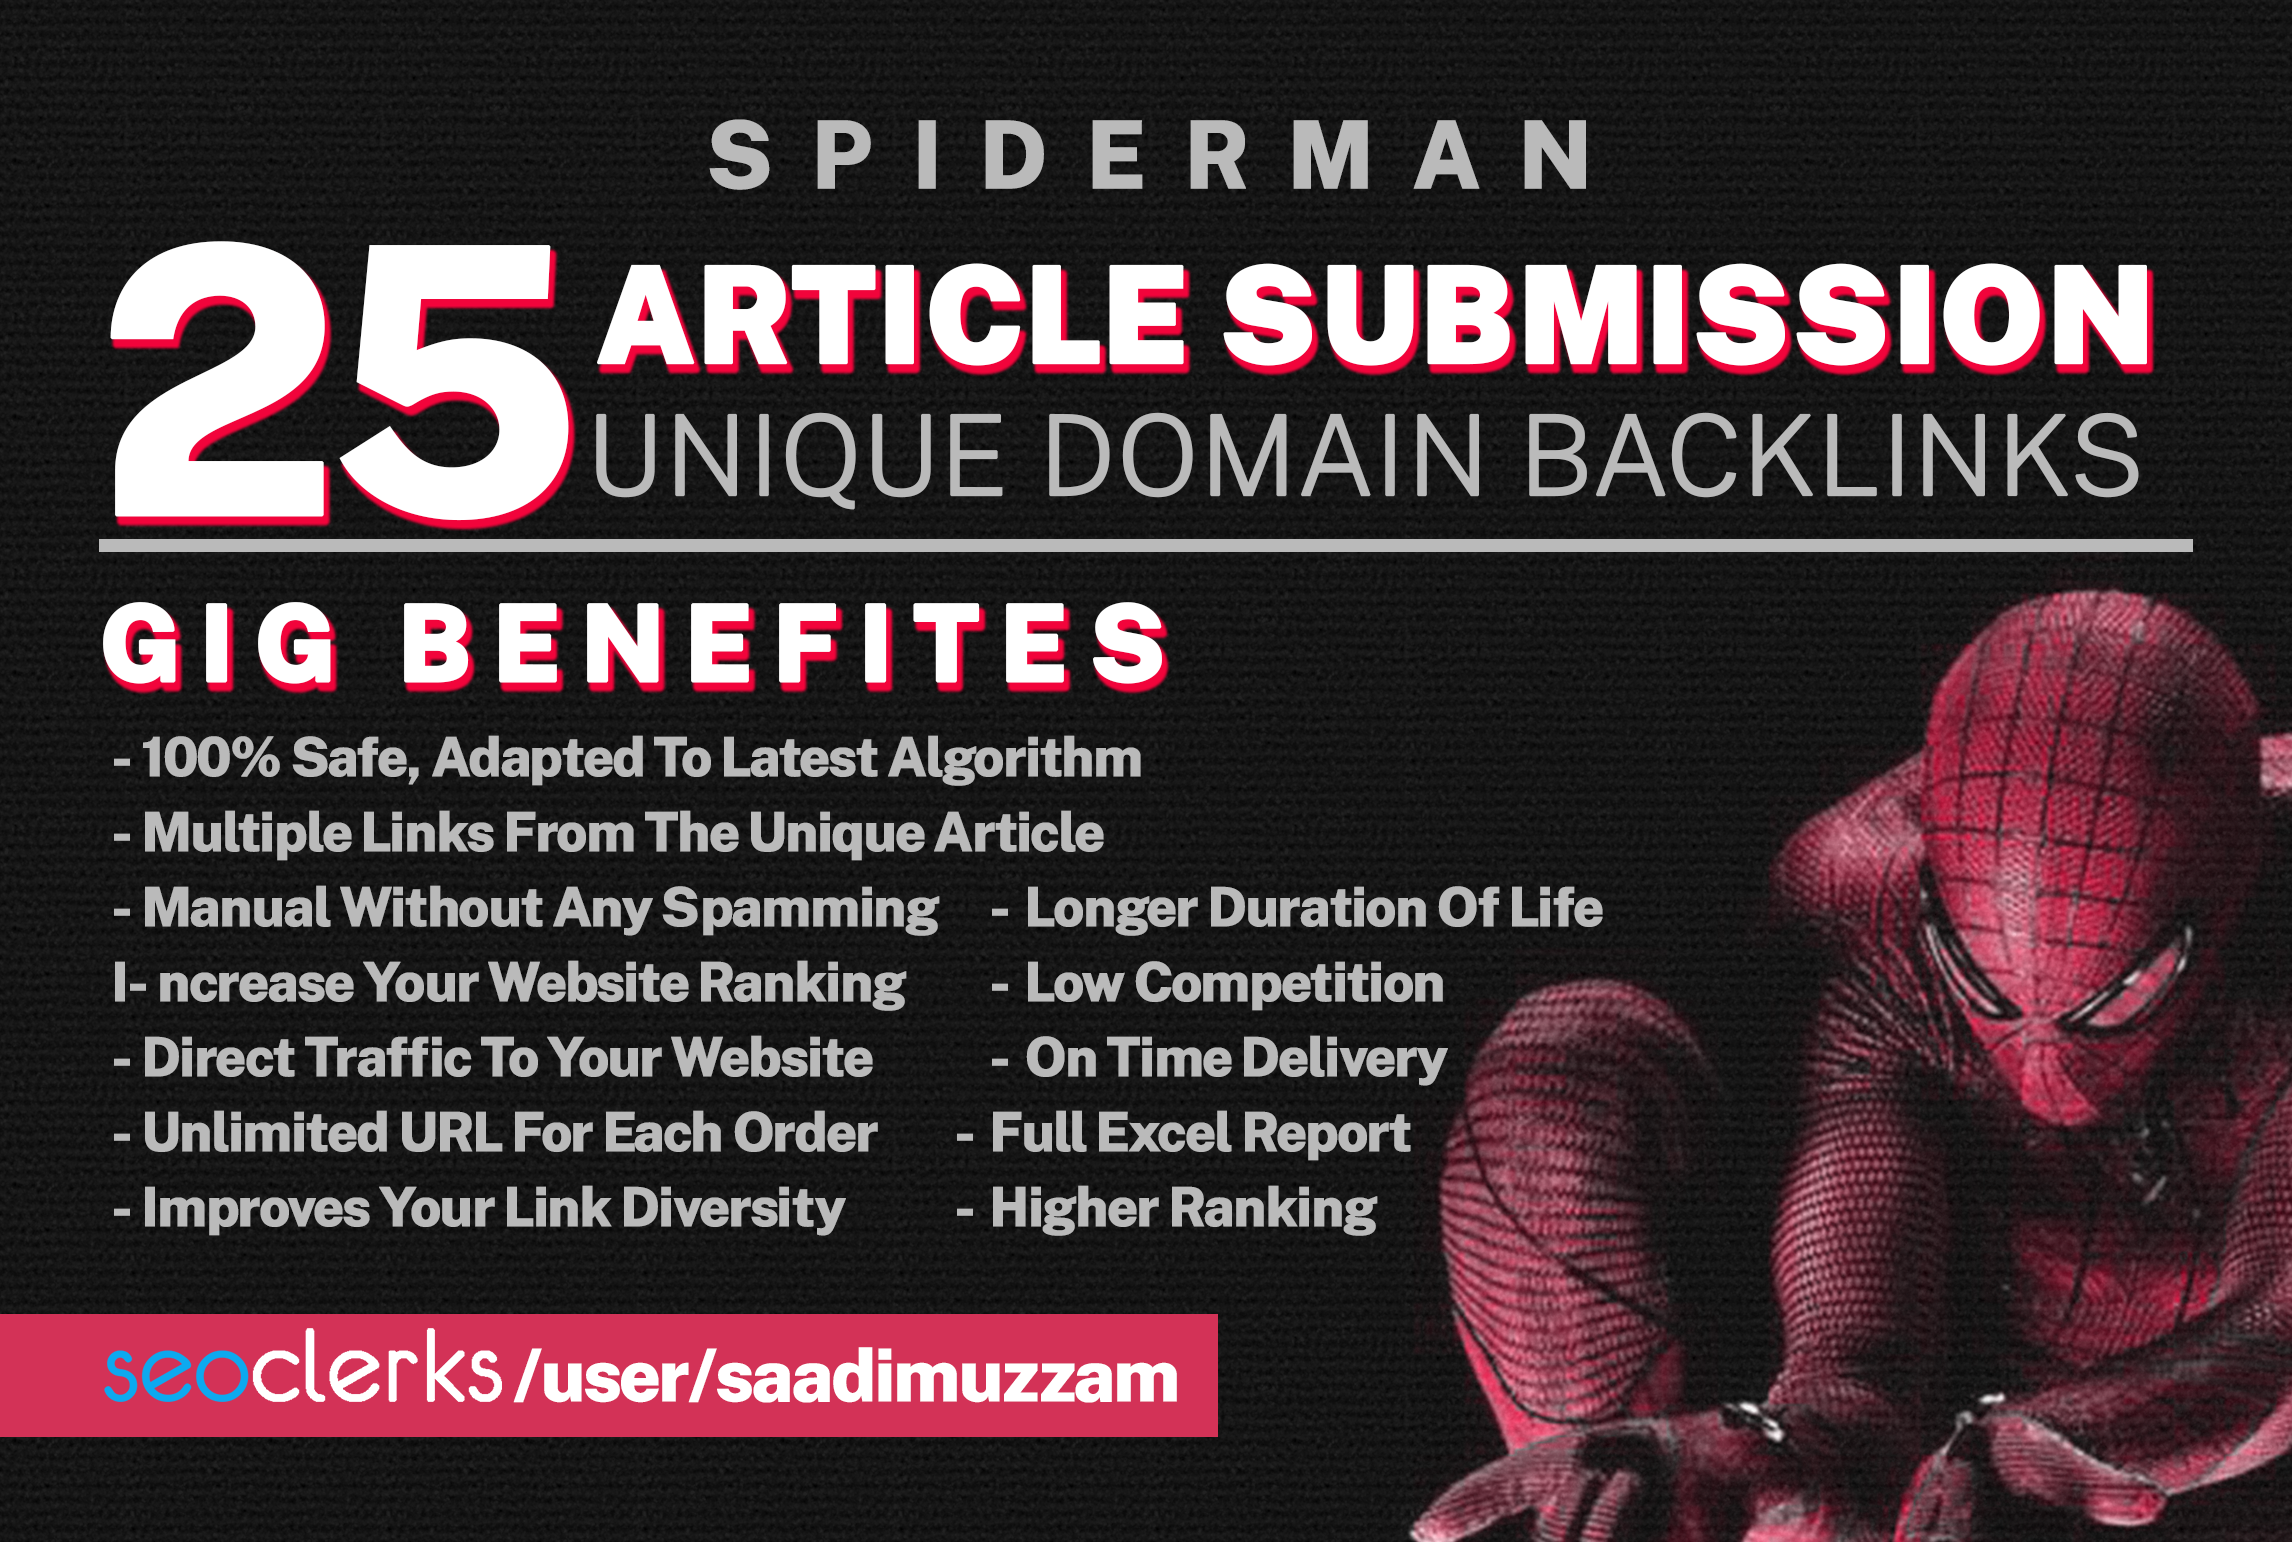 I Will Provide 25 Article Submission Unique Domain Backlinks